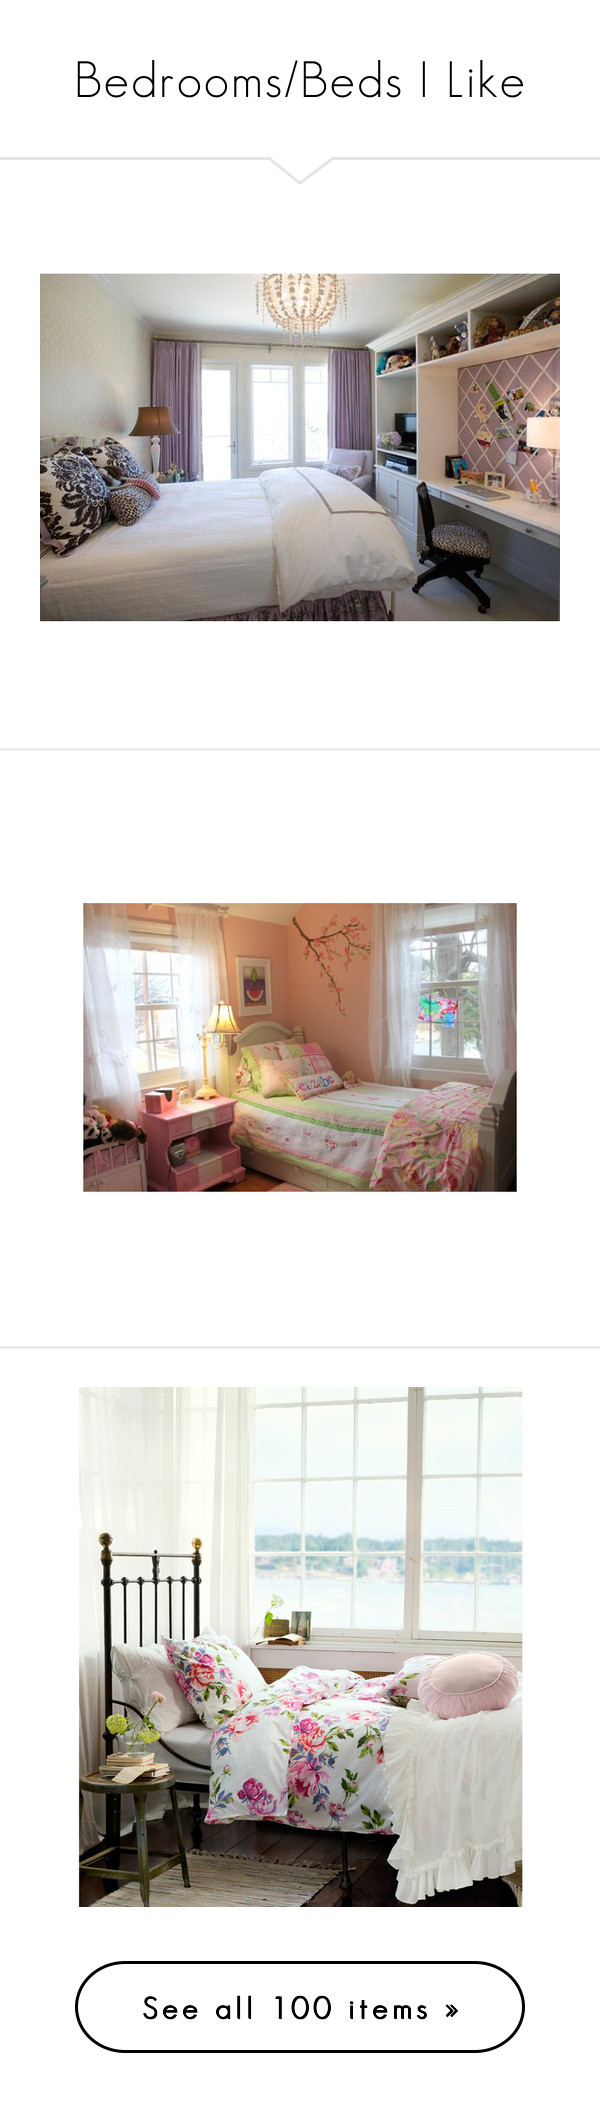 """""""Bedrooms/Beds I Like"""" by ecpjll ❤ liked on Polyvore featuring rooms, bedrooms, house, pictures, home, bedroom, home decor, window treatments, curtains and houses"""